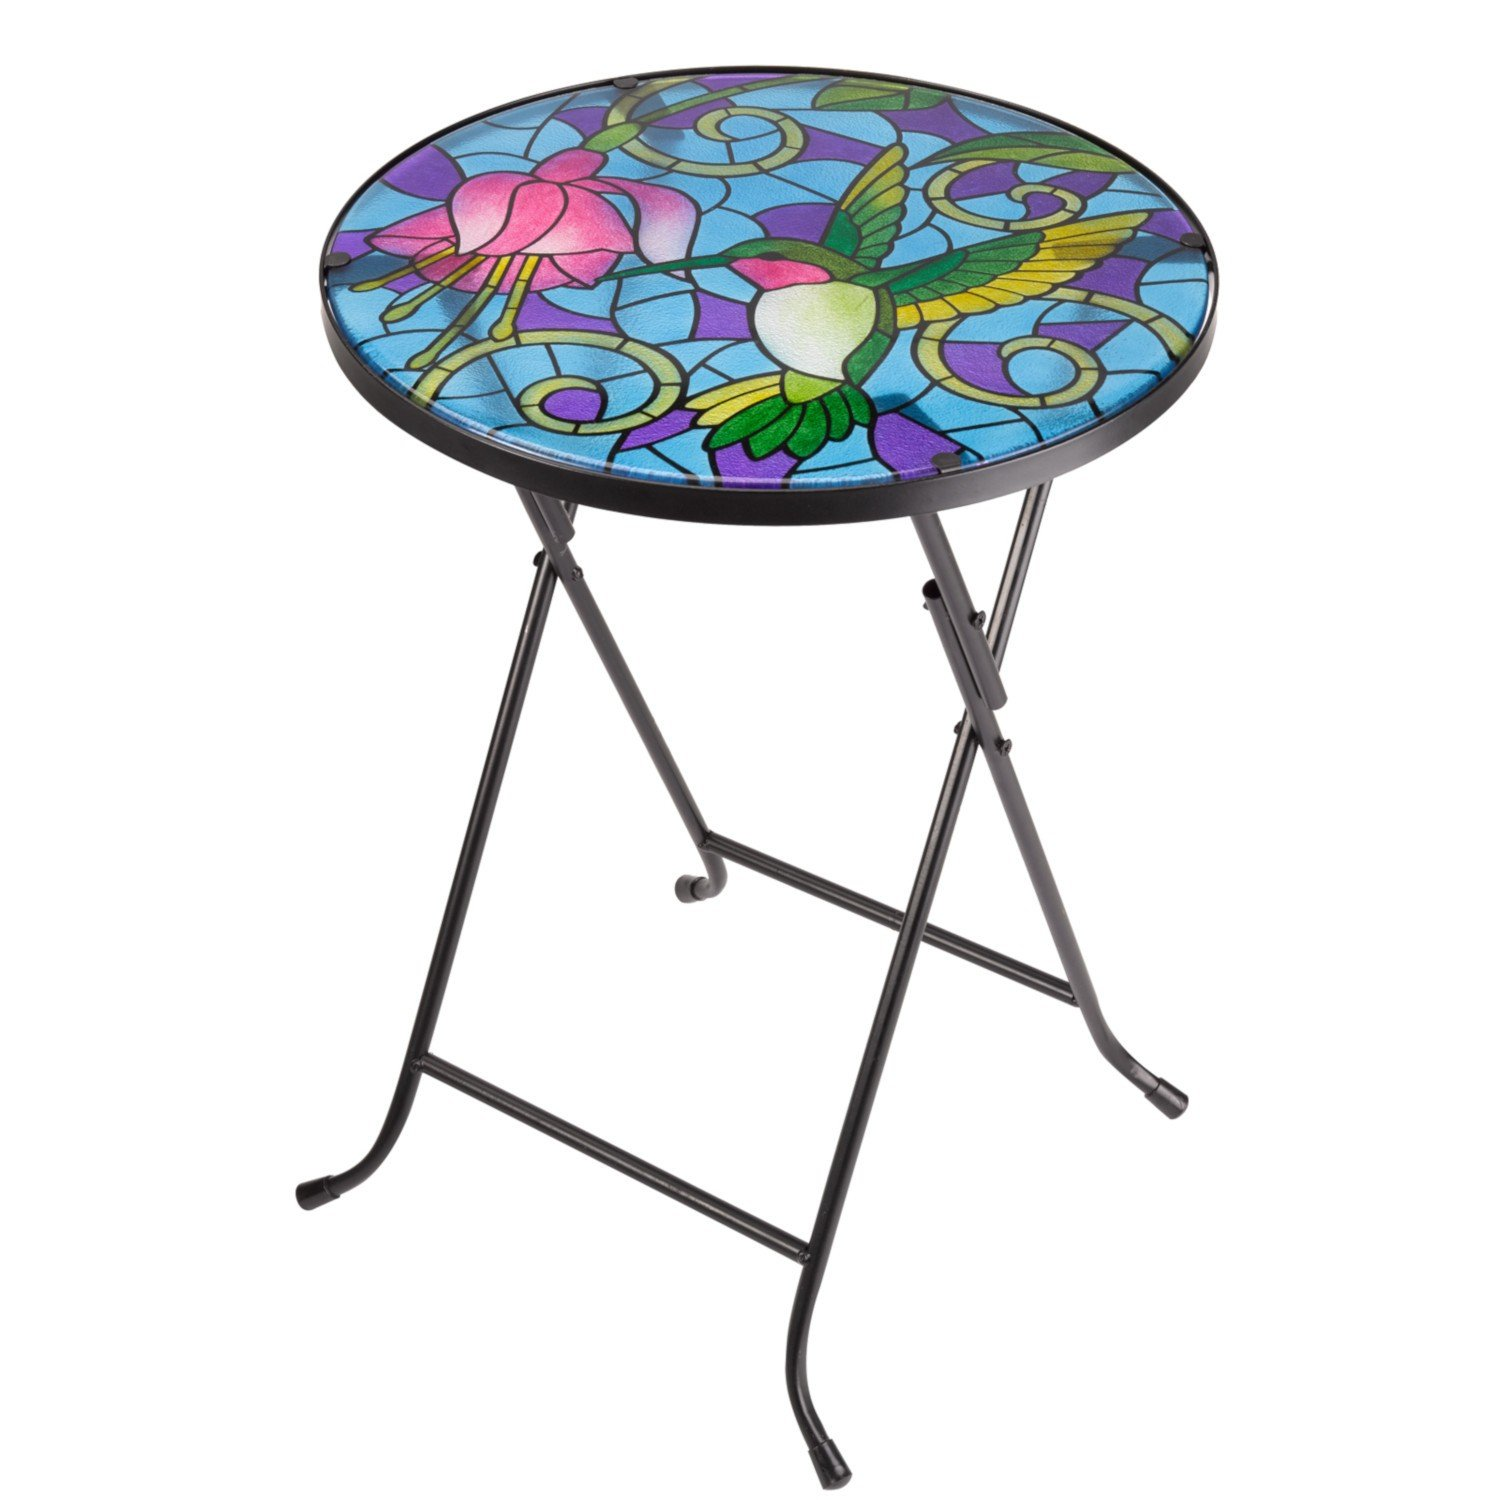 Folding Glass Patio Table Image Collections Table